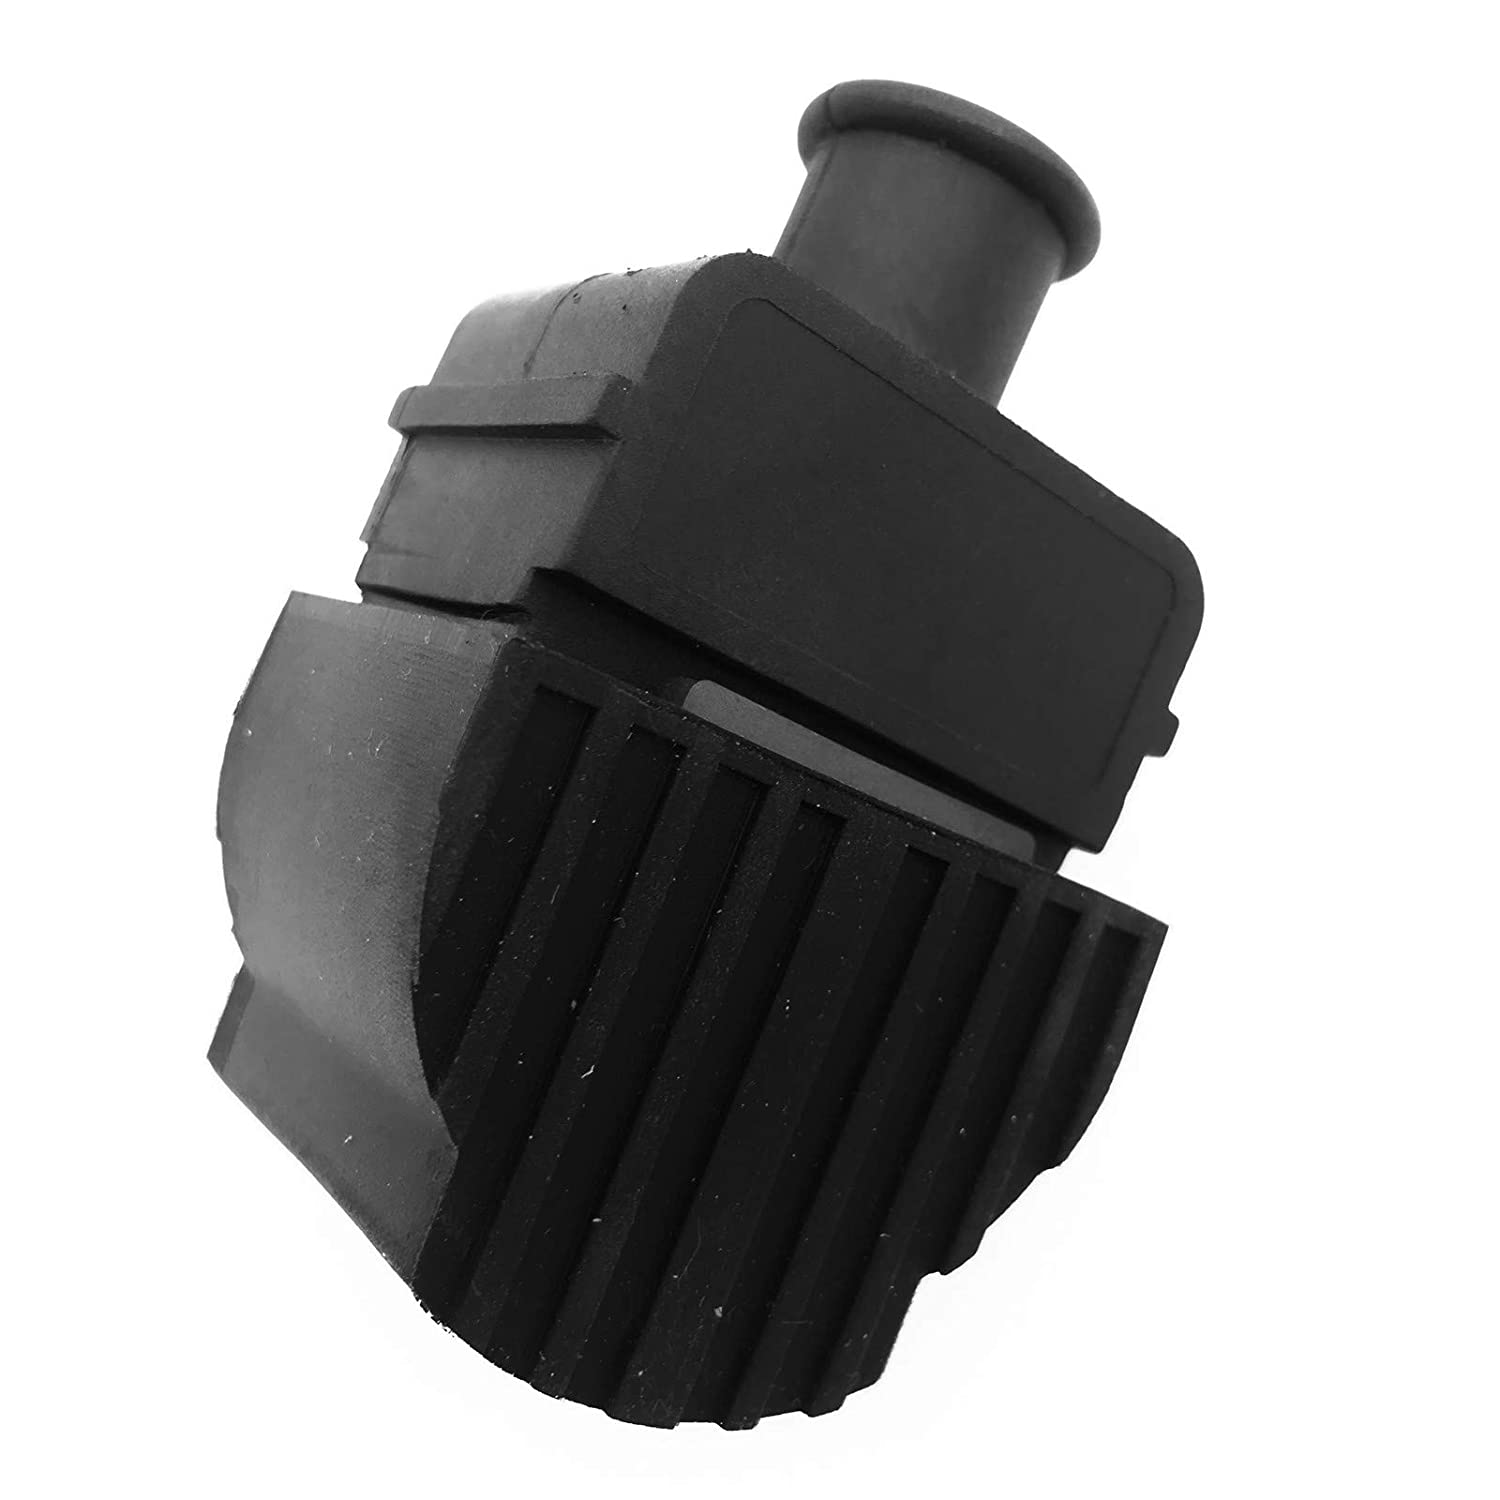 125hp V-135 140hp V-150 Chrysler Force 40hp 150hp 339-7370A13 NEW Ignition Coil Replacement for Mercury Marine Outboard 339-832757A4 339-832757B4 6hp 8hp 210CC Sail Power 9.9hp